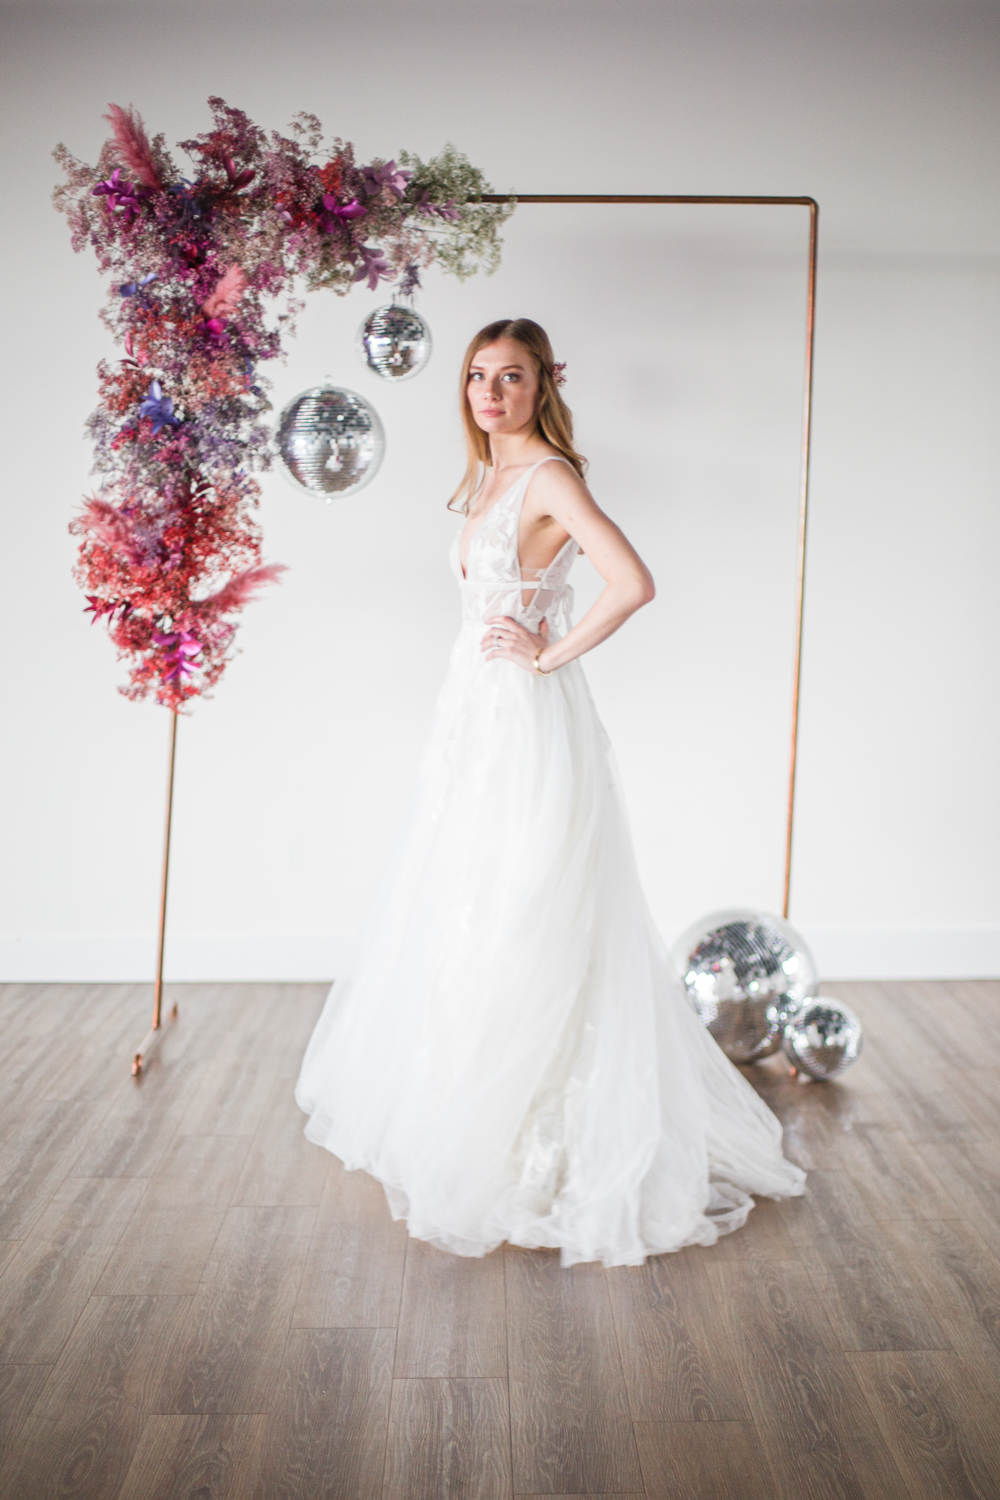 The bride was wearing an A line floral applique wedding dress with a train and cutout sides